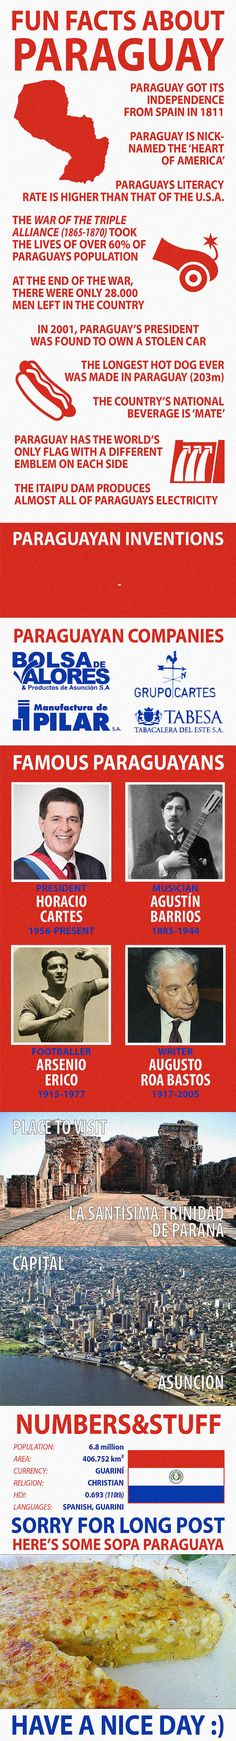 Fun Facts about Paraguay